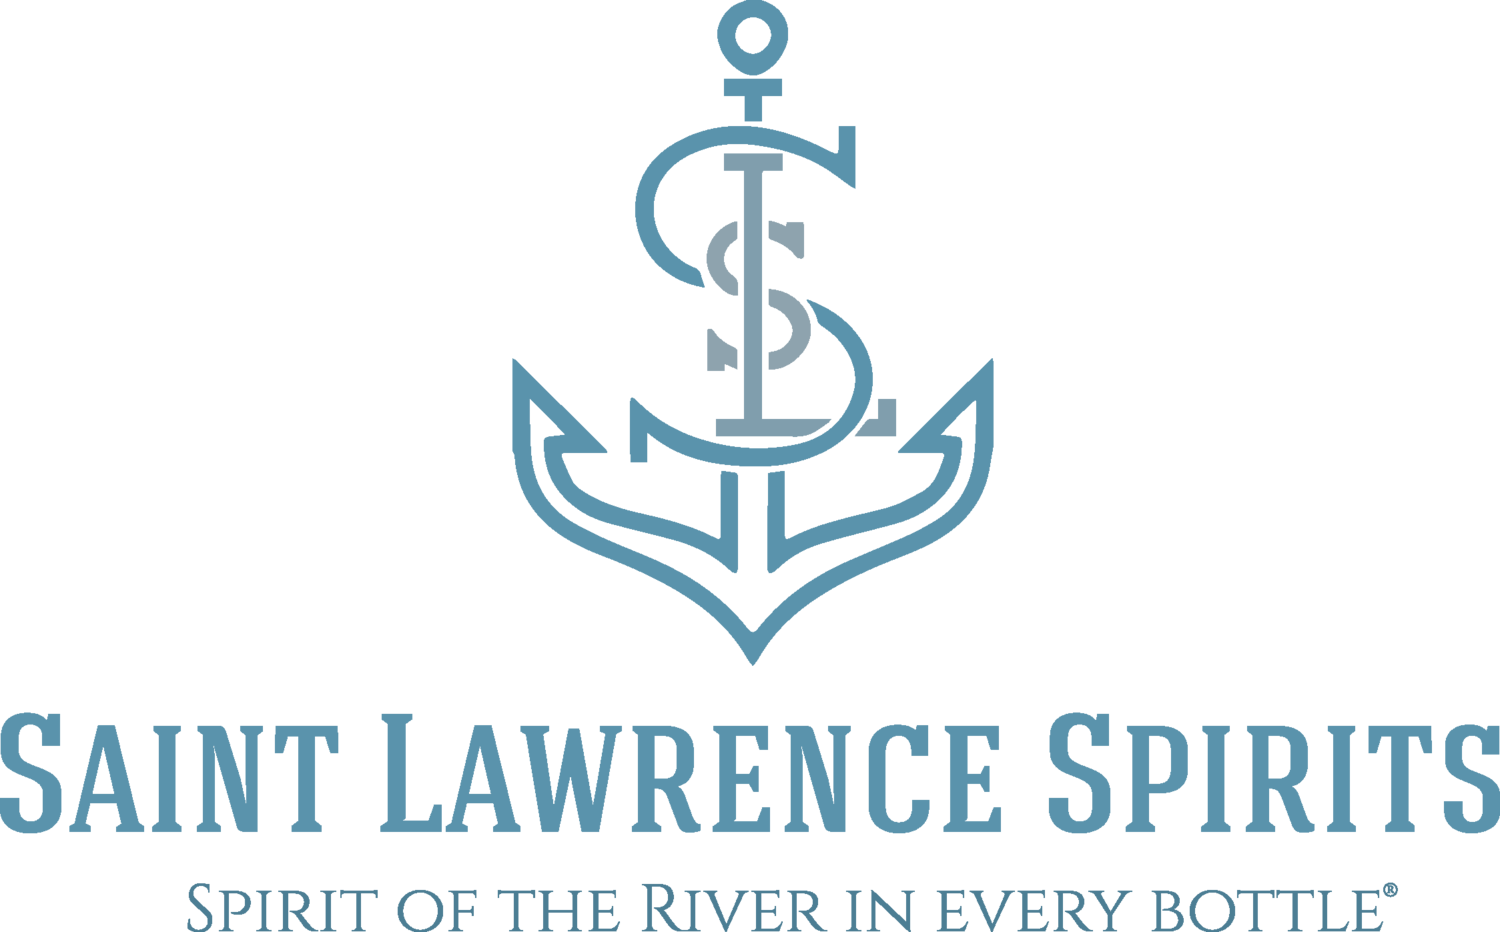 St. Lawrence Spirits